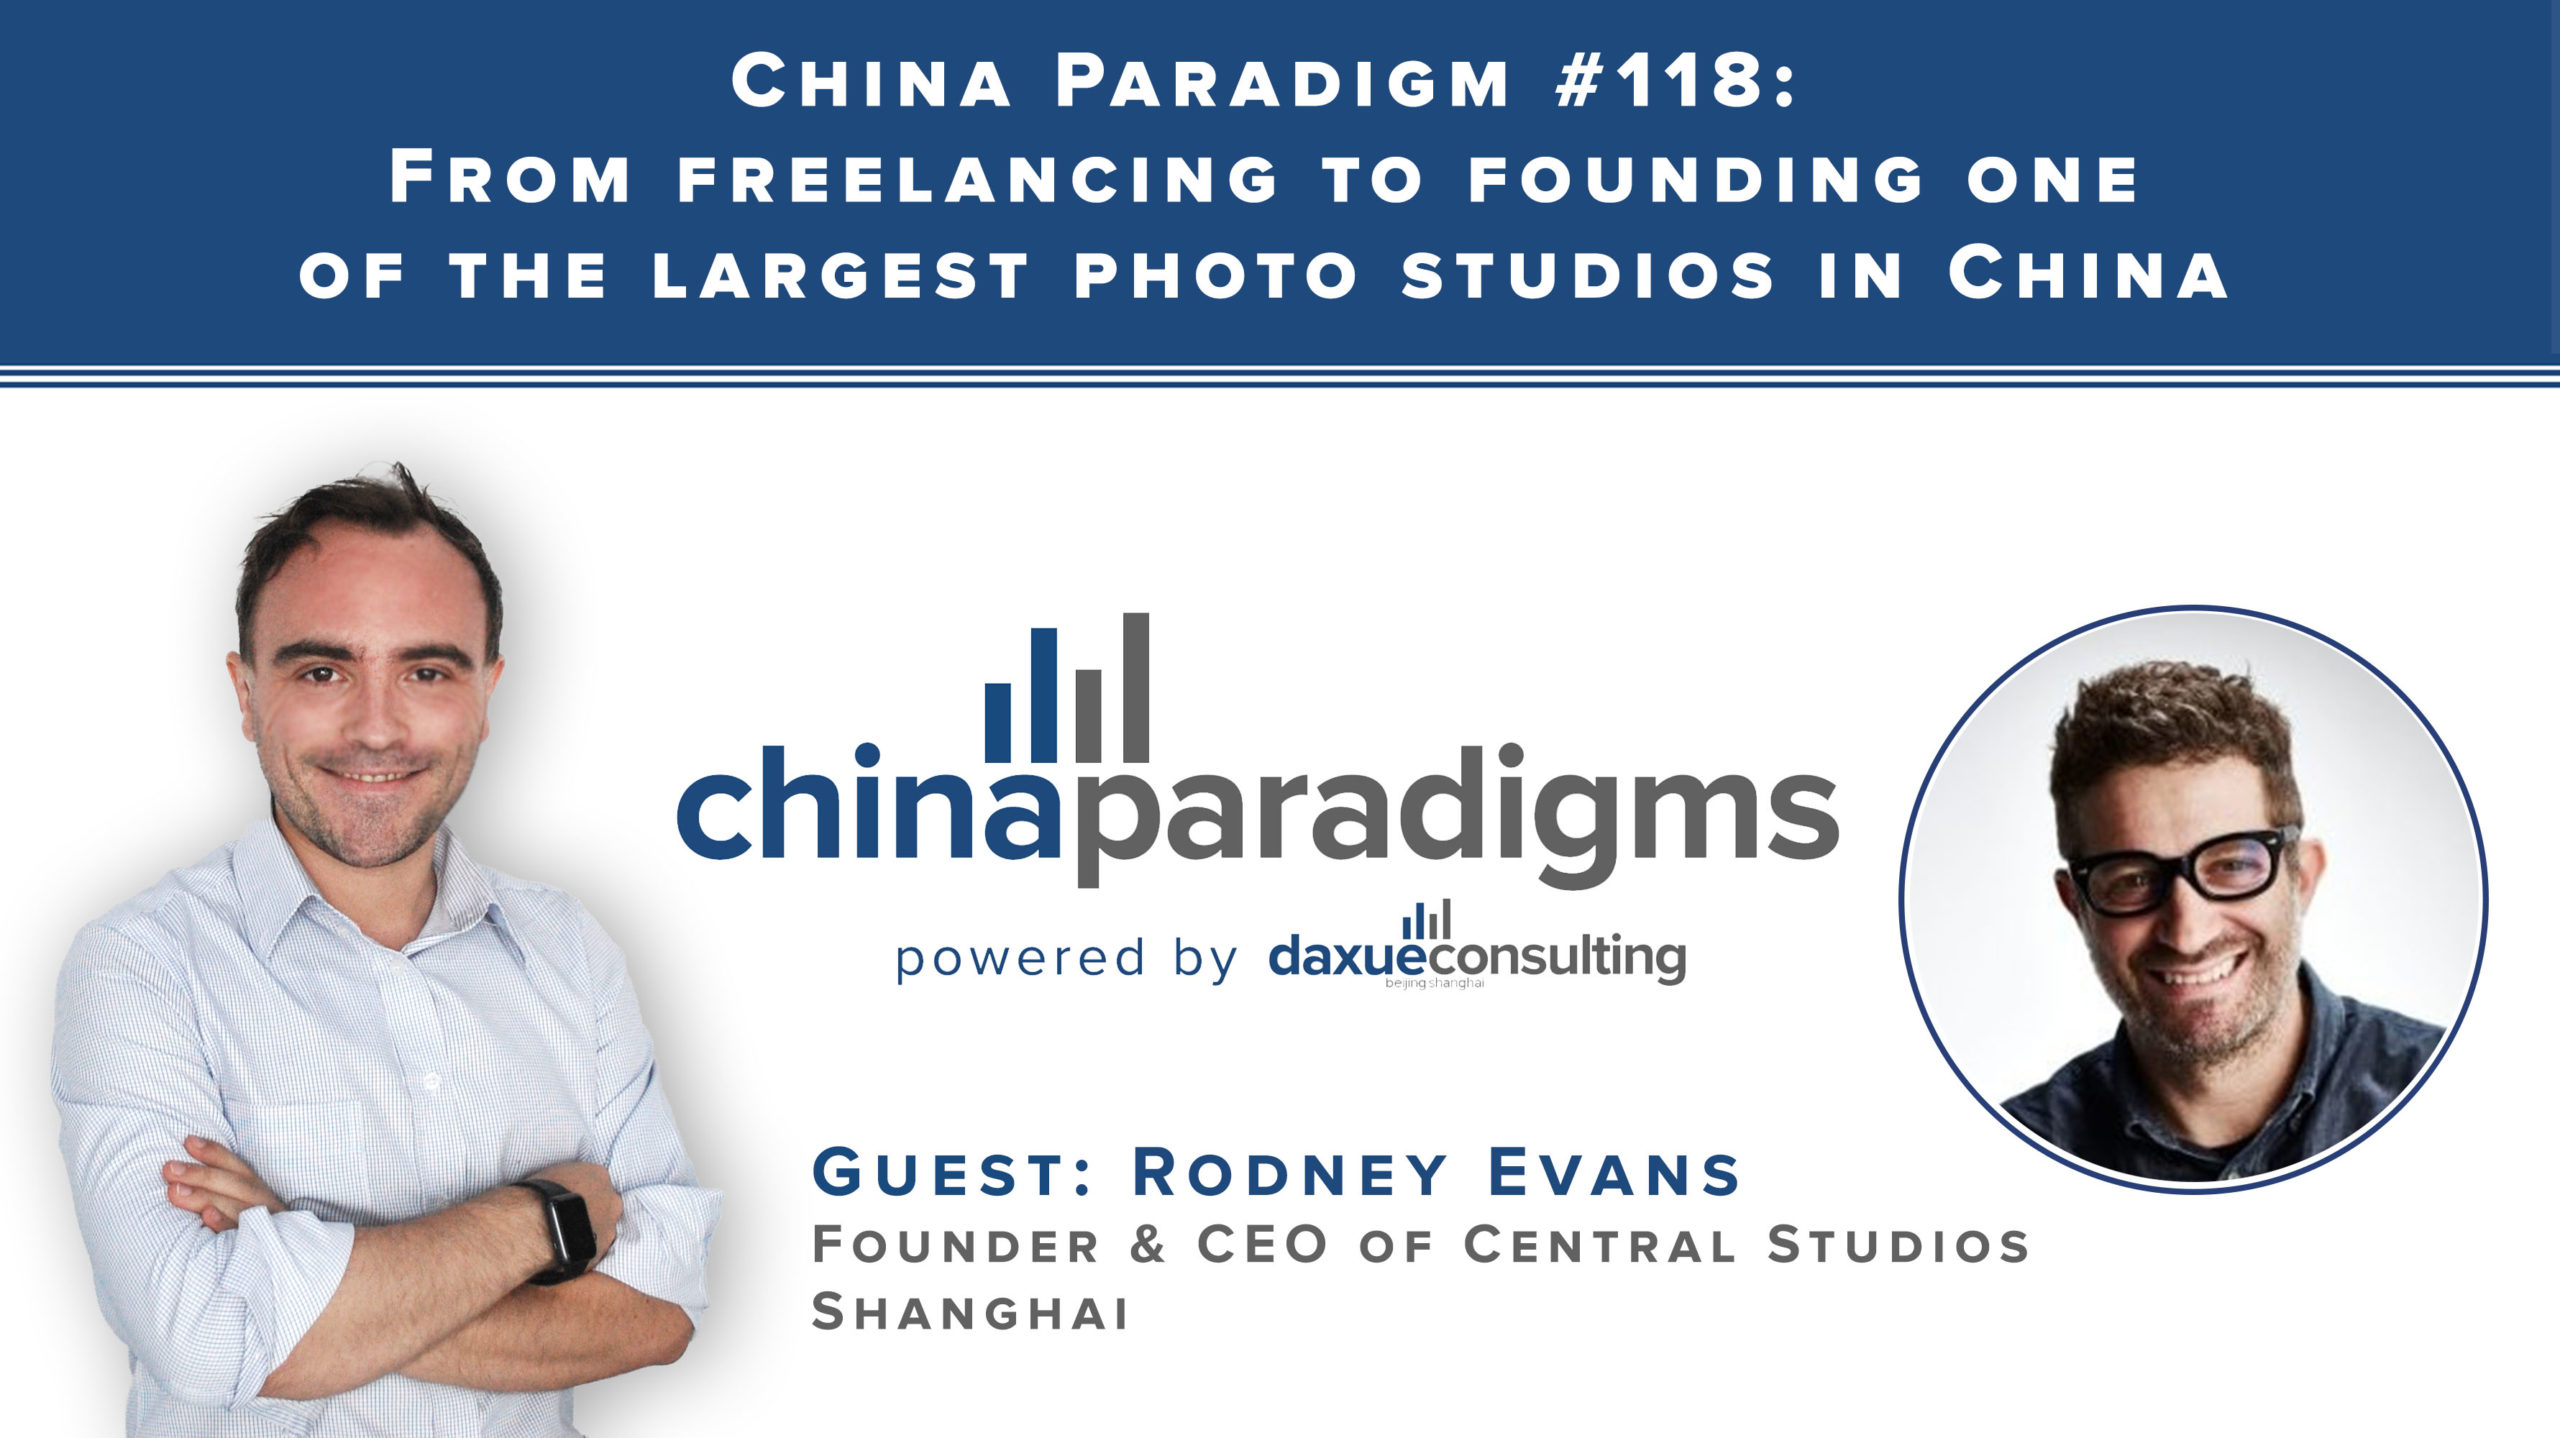 image production houses in China